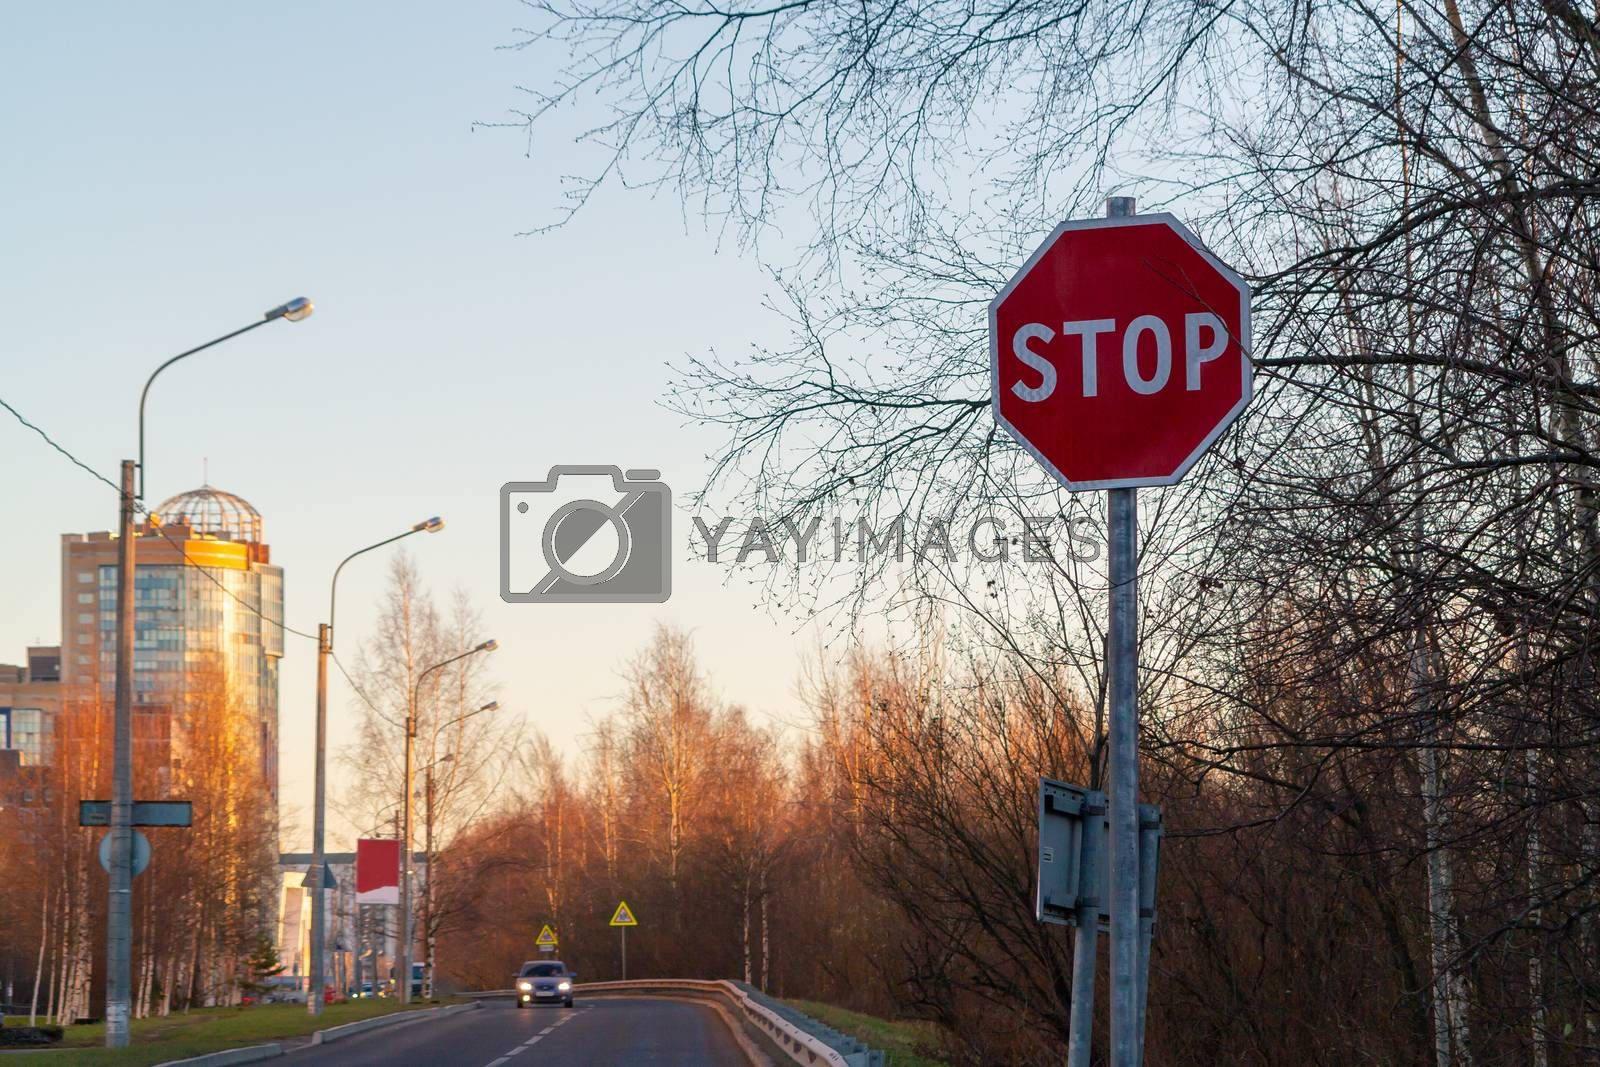 Stop sign on the side of the road at the entrance to the city by galsand